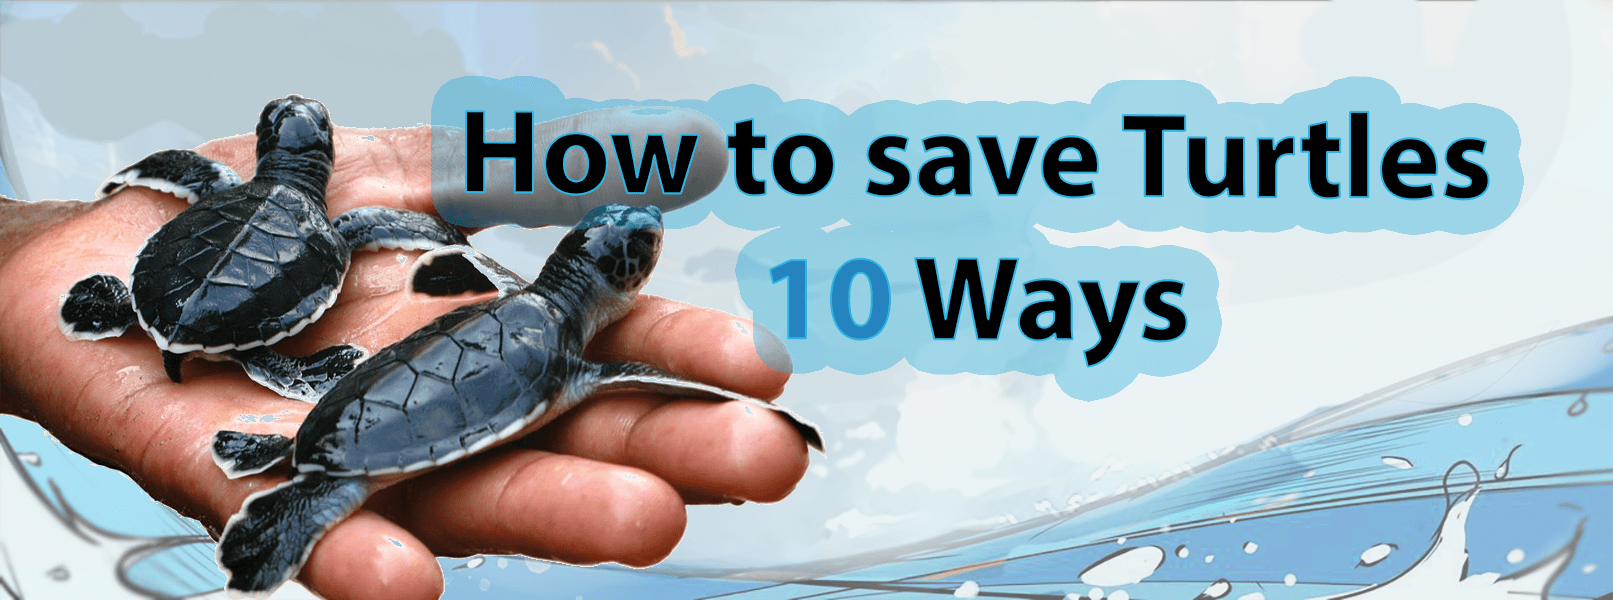 How to save turtles